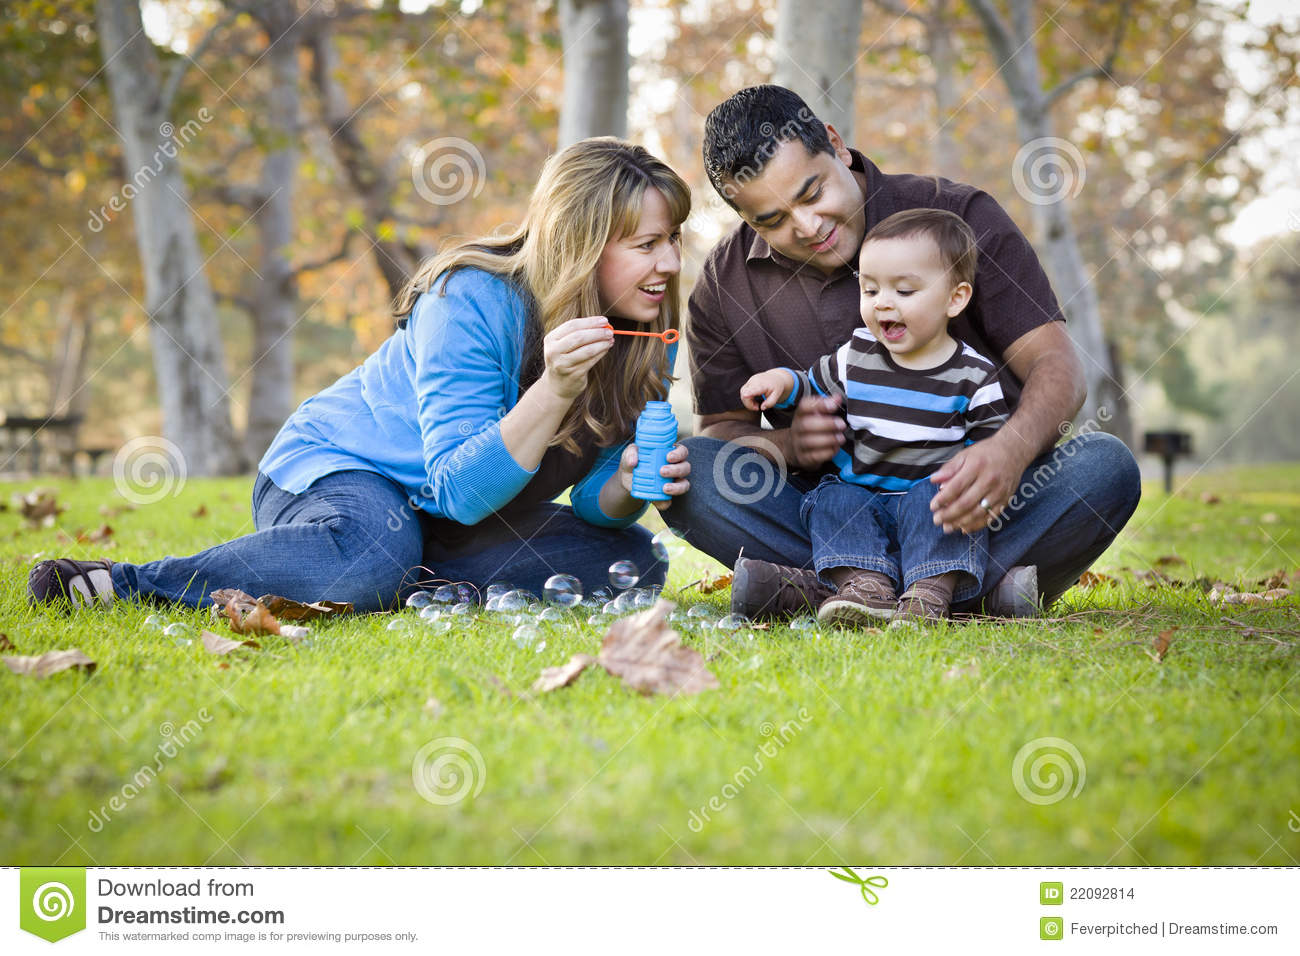 Mixed Race Ethnic Family Playing with Bubbles